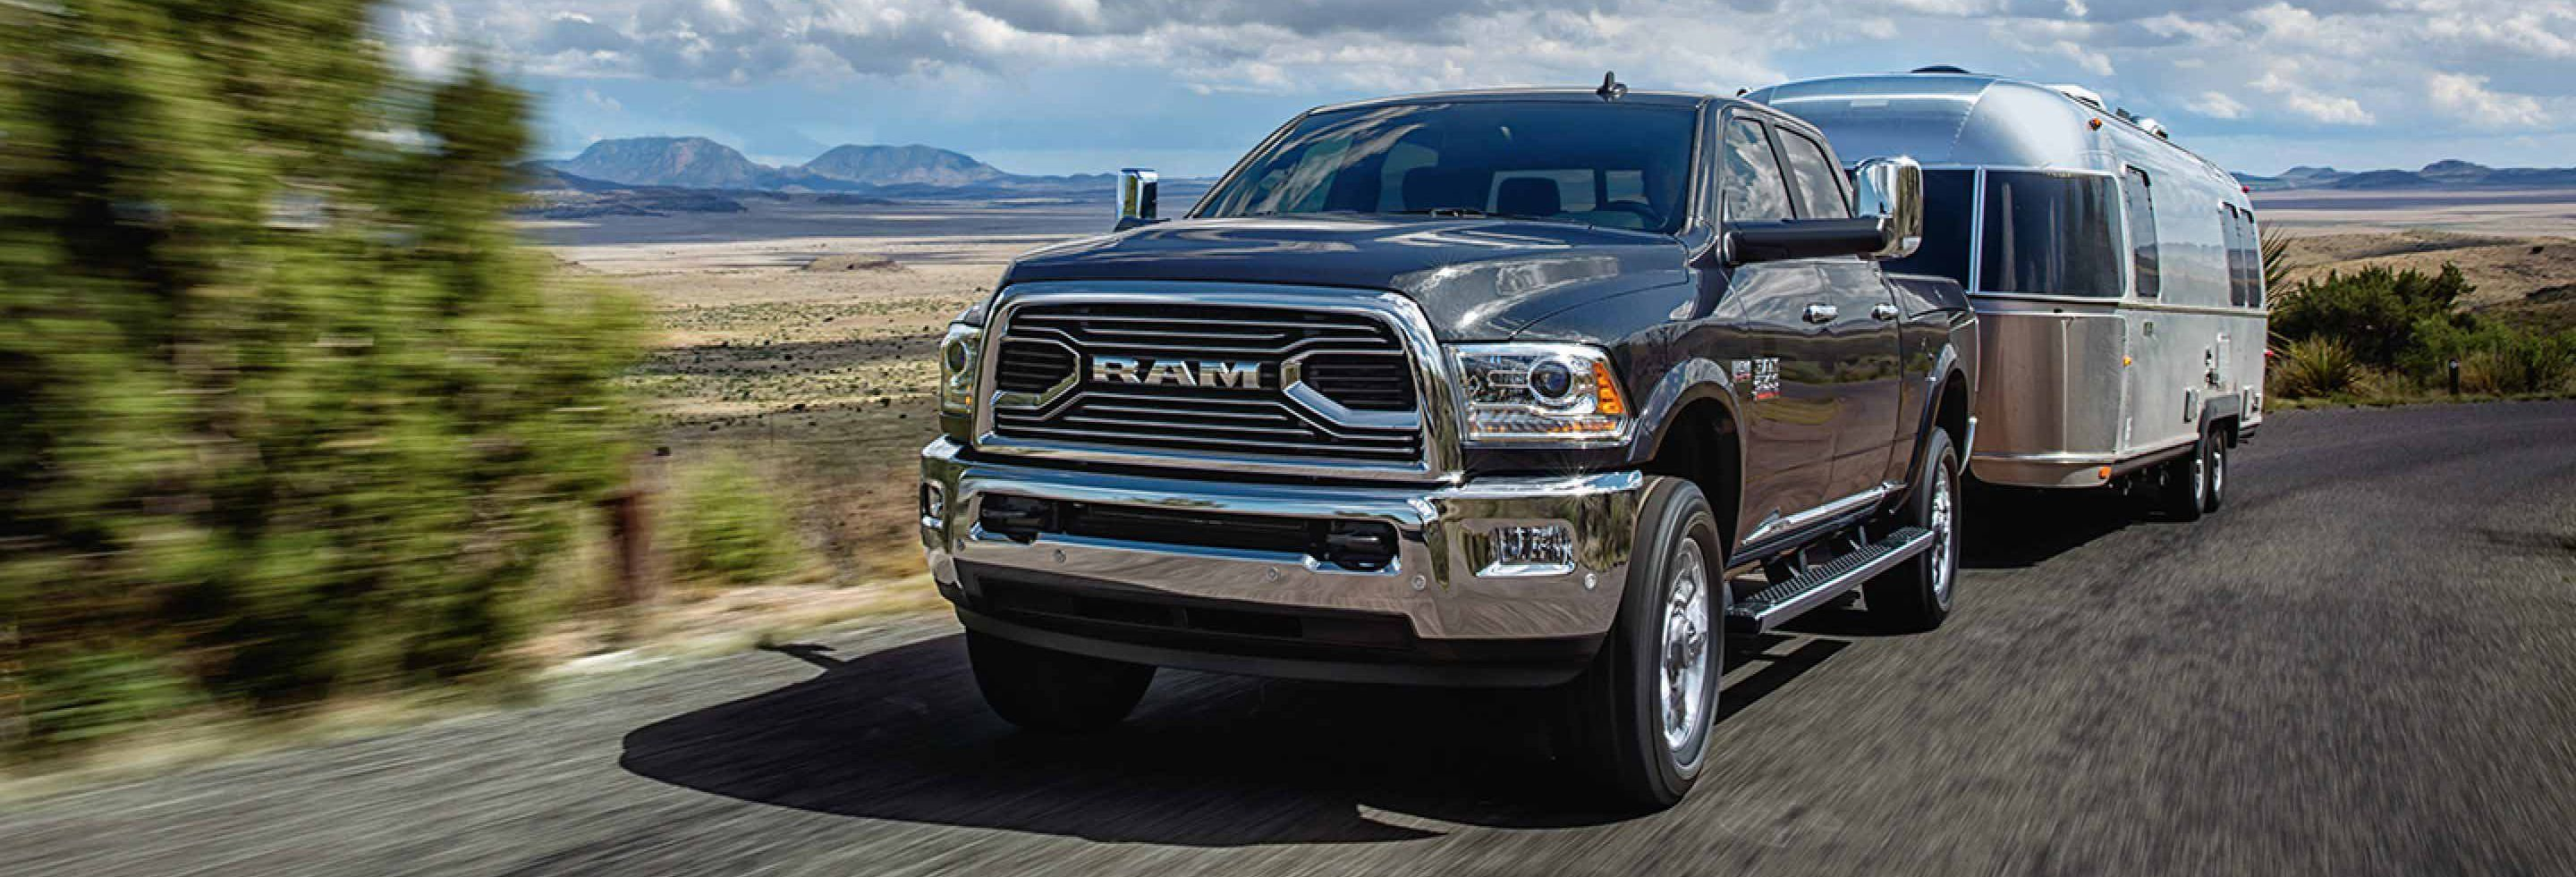 2018 Ram 2500 Financing near Oklahoma City, OK